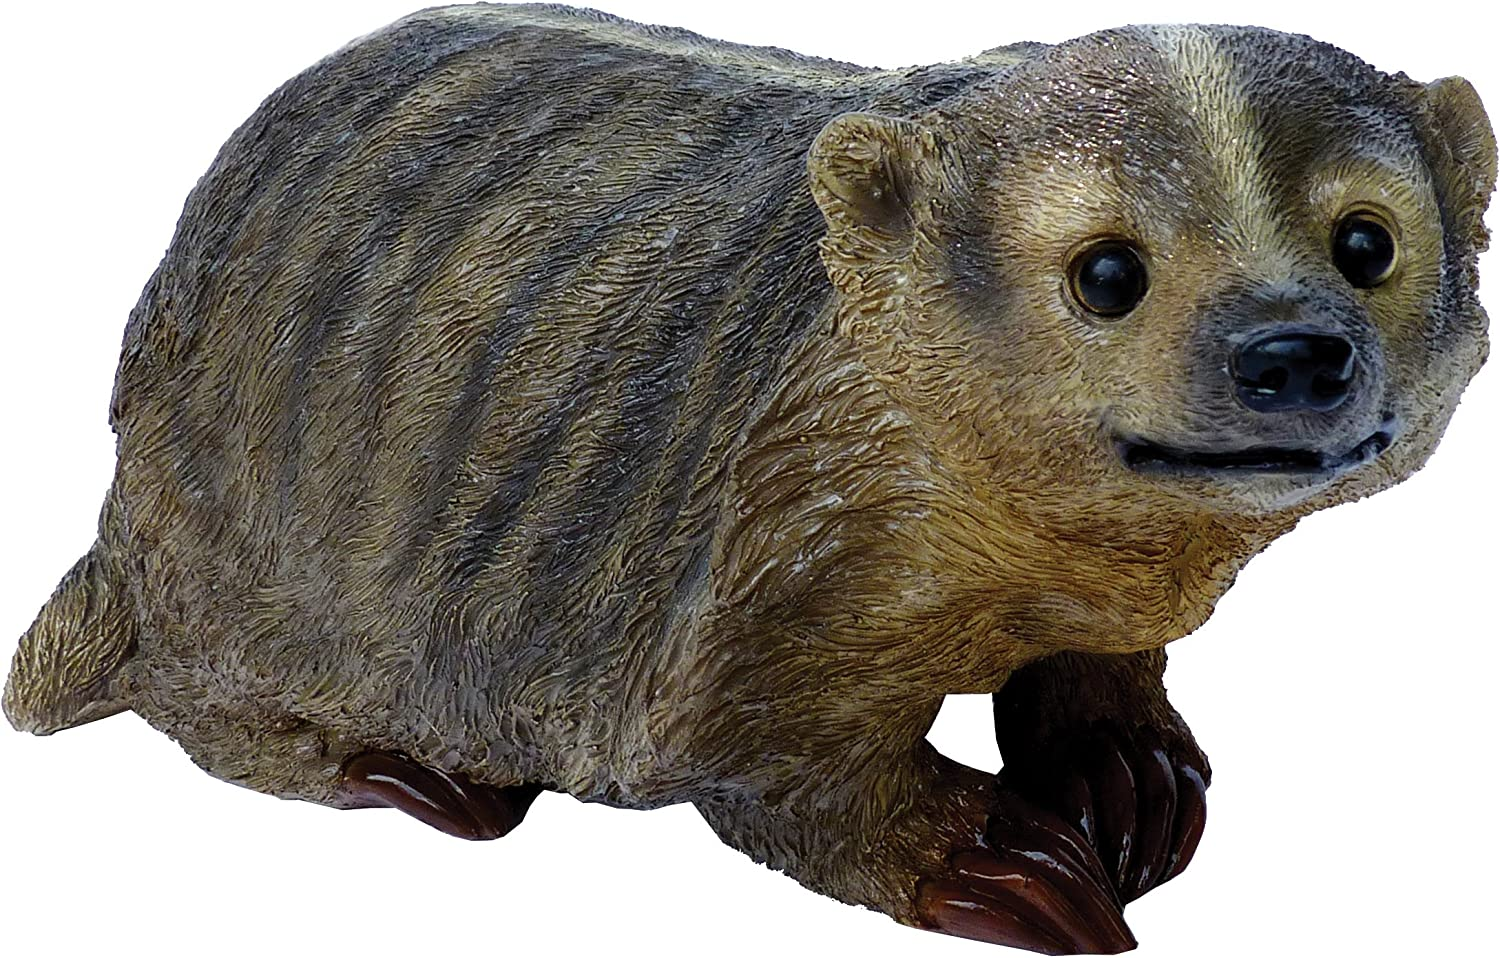 Badger by Michael Carr Designs - Outdoor Badger Figurine for gardens, patios and lawns (80051)